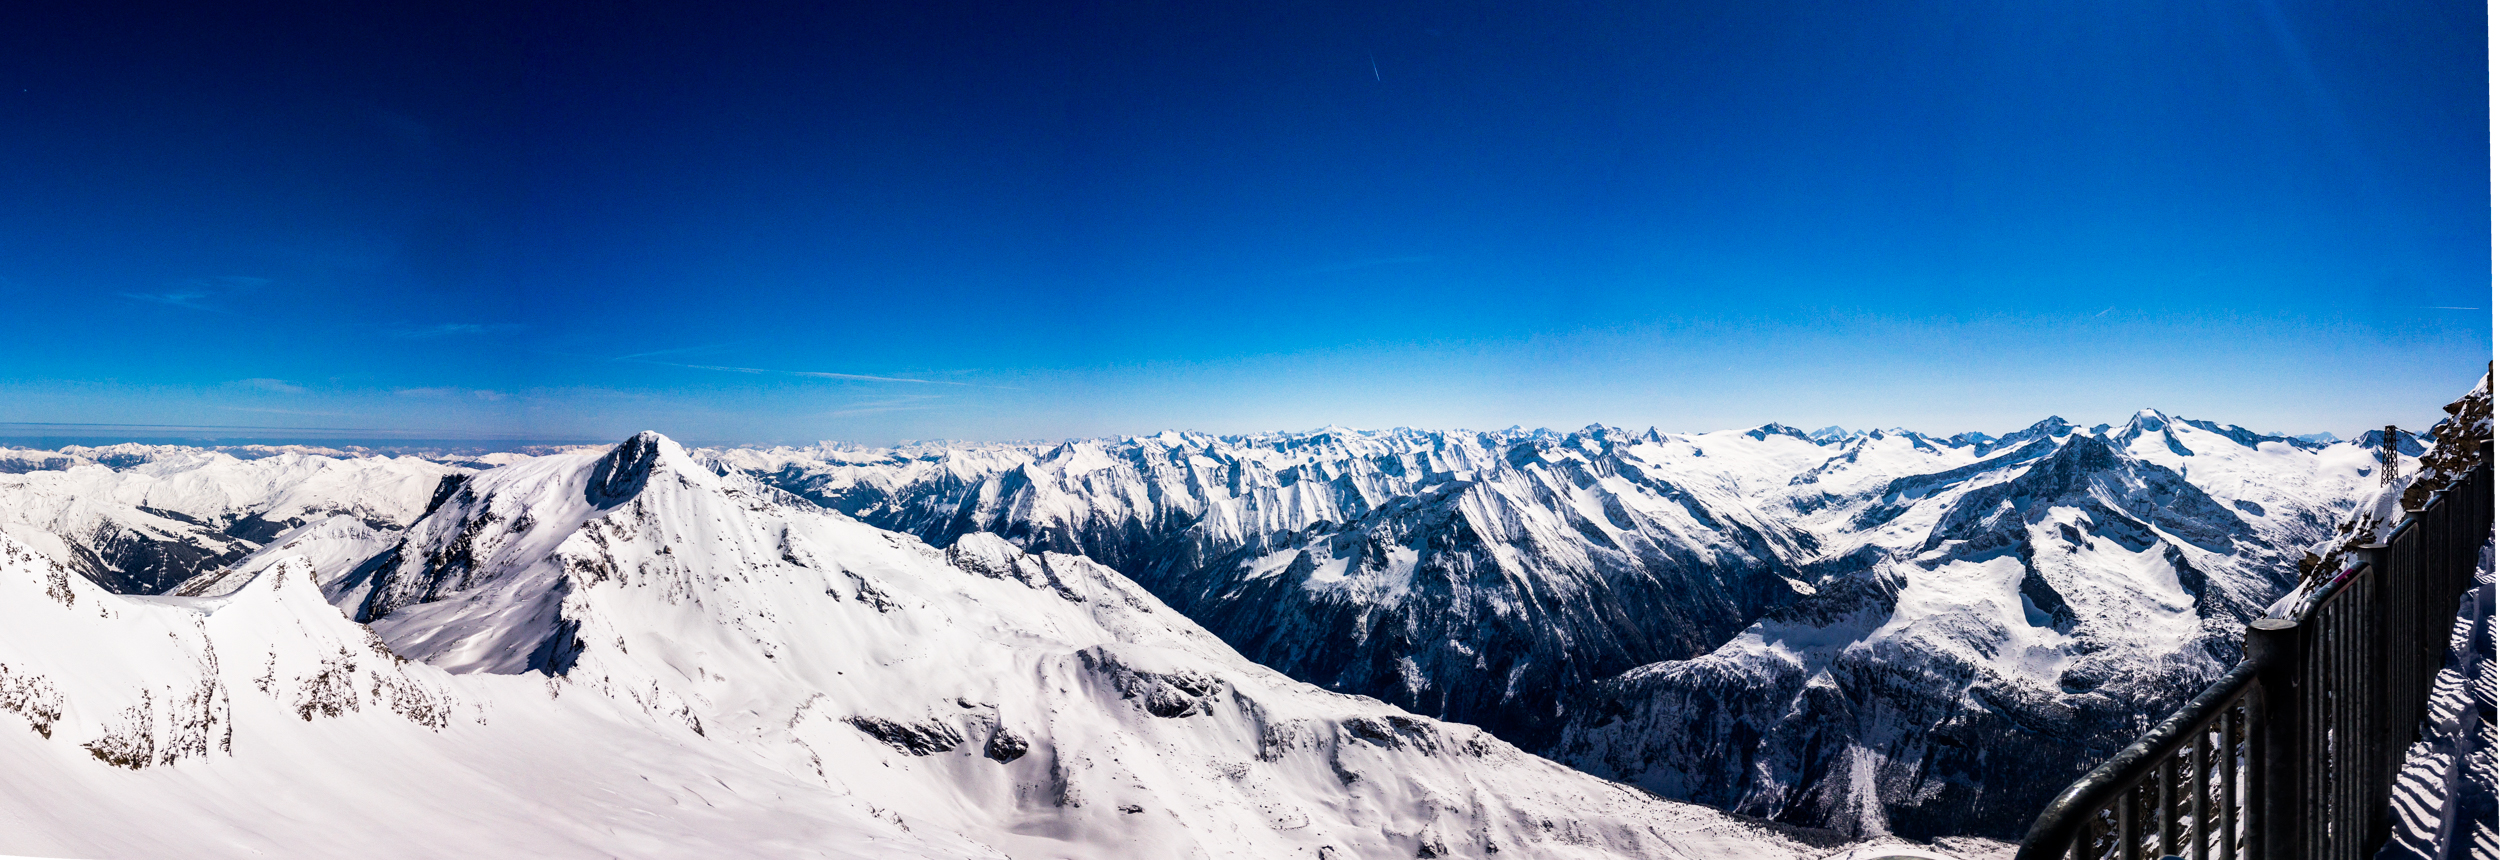 The East view of the Alps from Hintertux 3250m